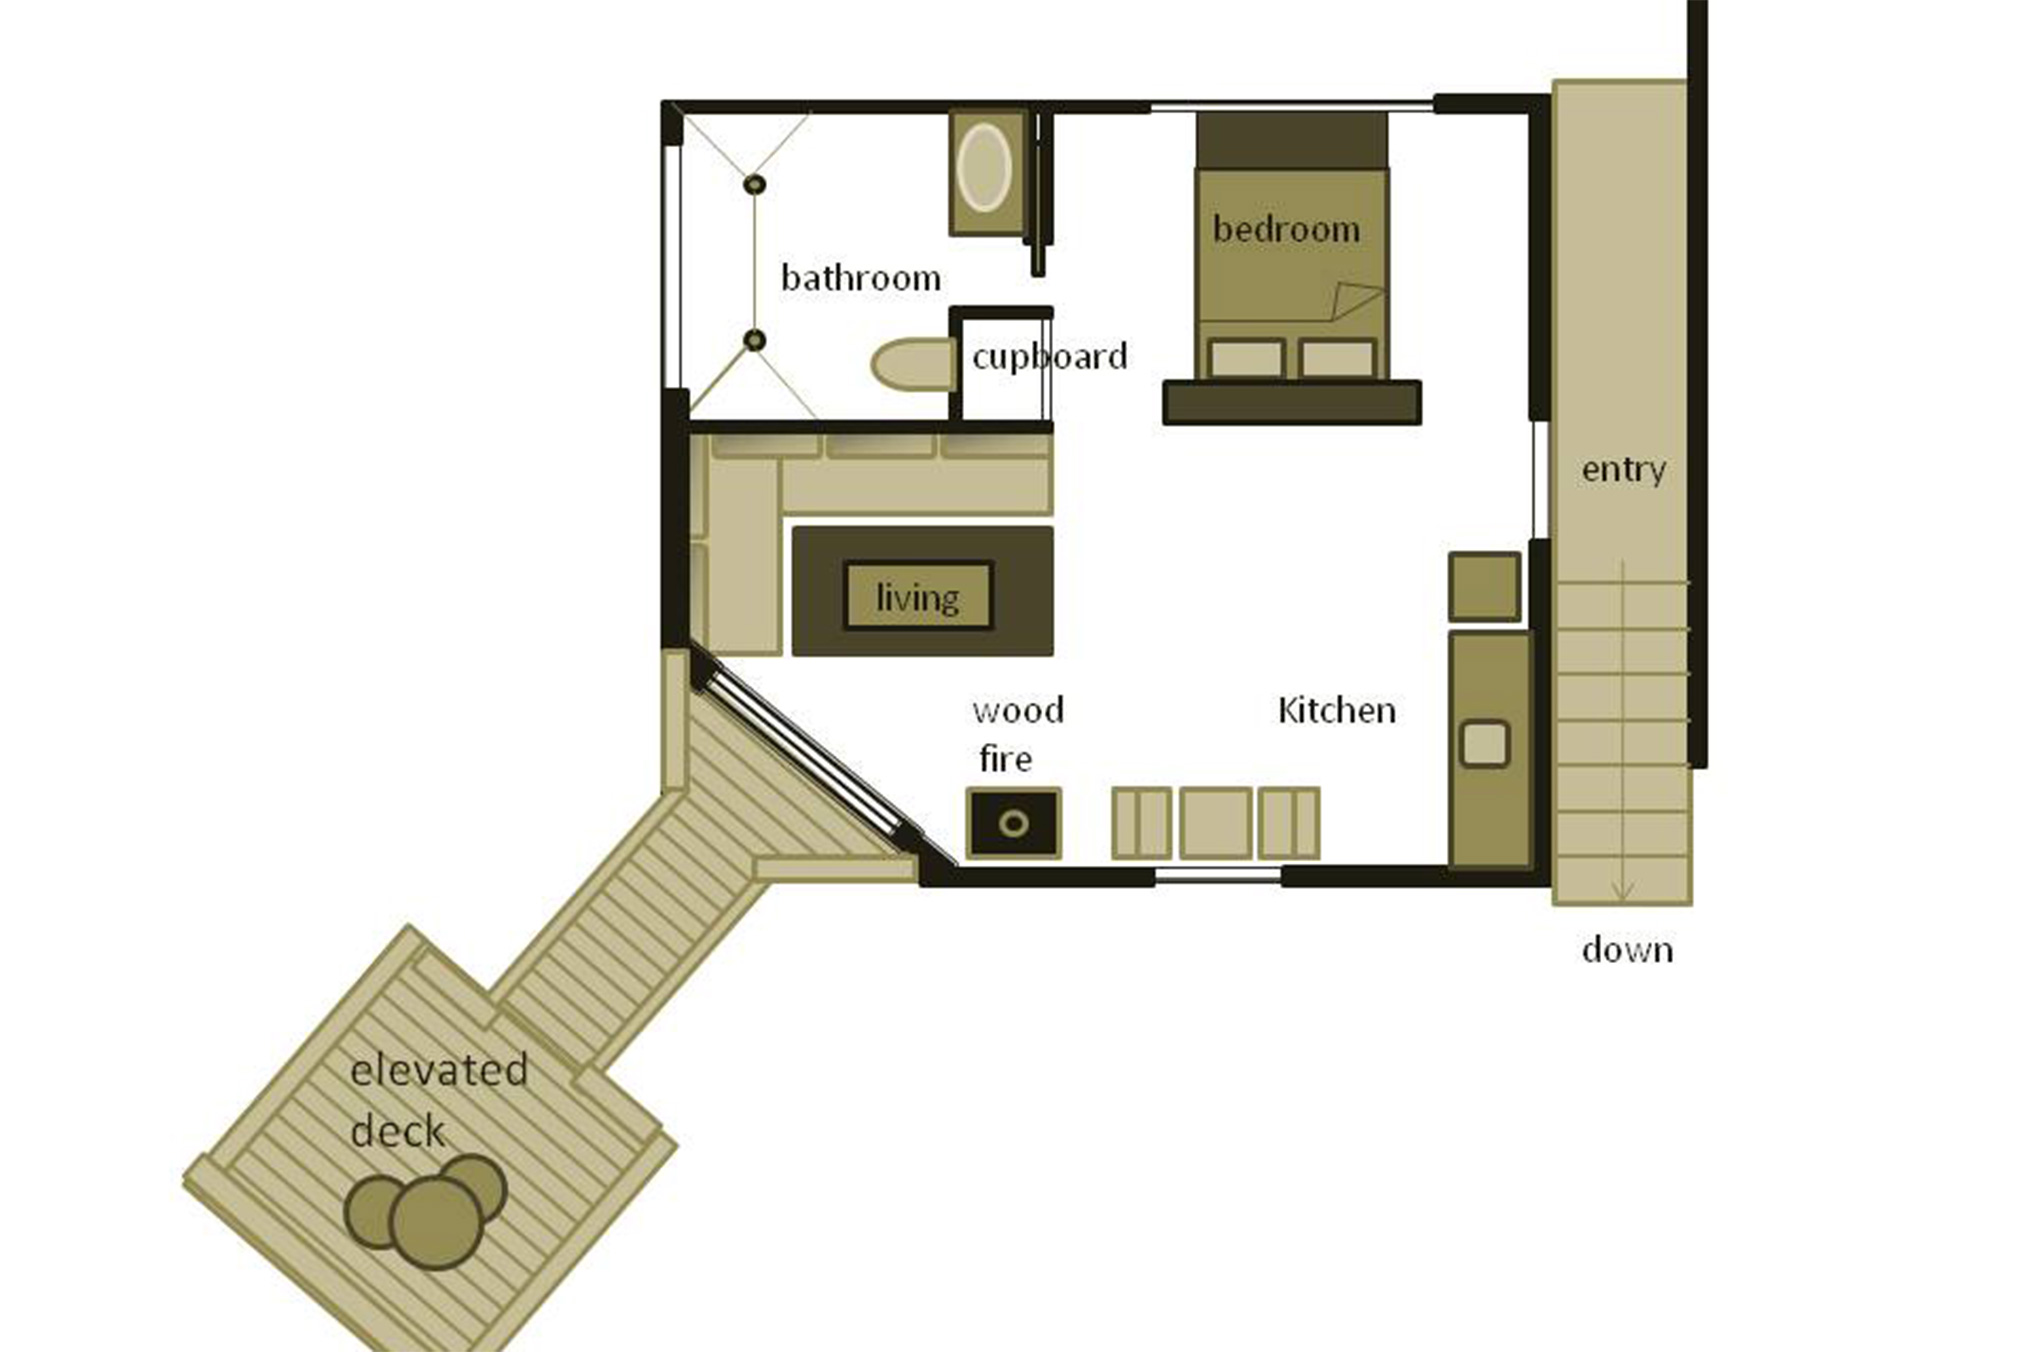 Studio 4 Floorplan